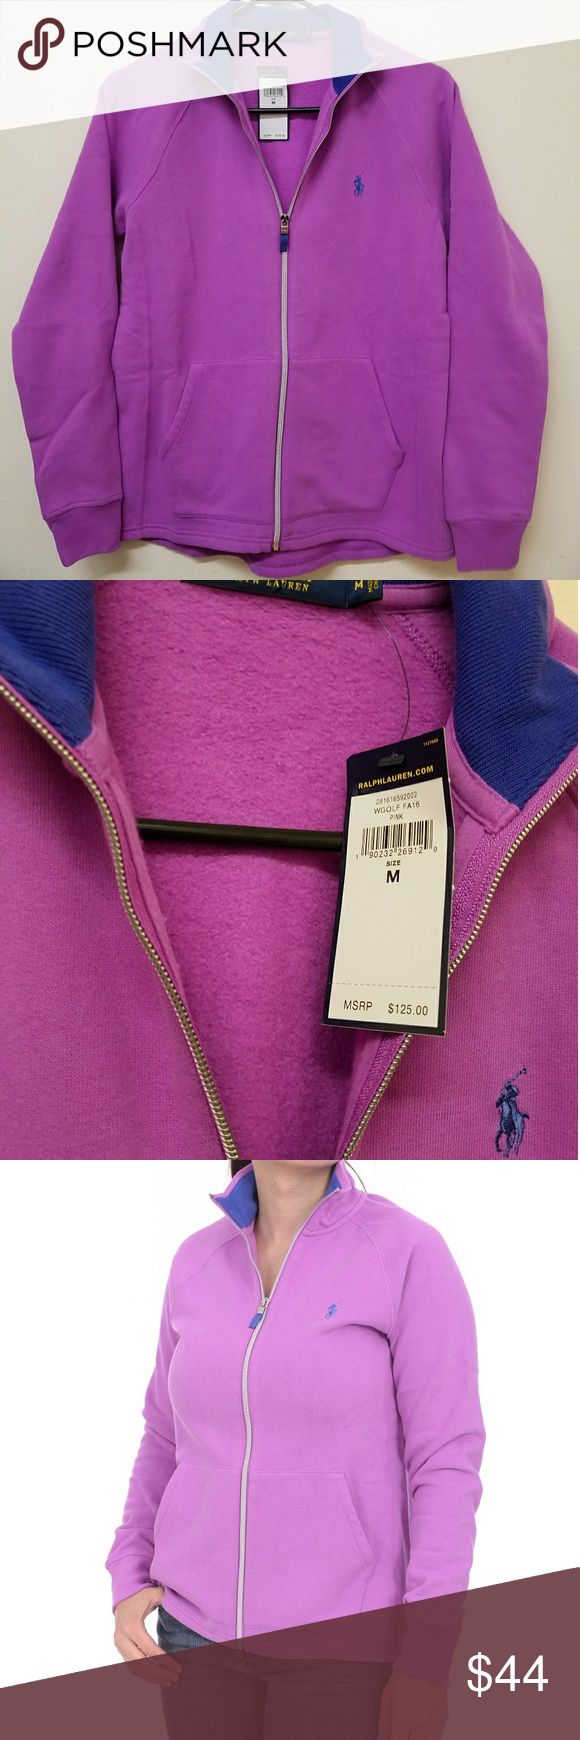 Ralph Lauren Polo Golf Women's Zip Up Sweater Women's Polo Golf Ralph Lauren Zip Up Sweater Fleece with Front Pockets. Purple with Blue Pony Logo Ralph Lauren Sweaters